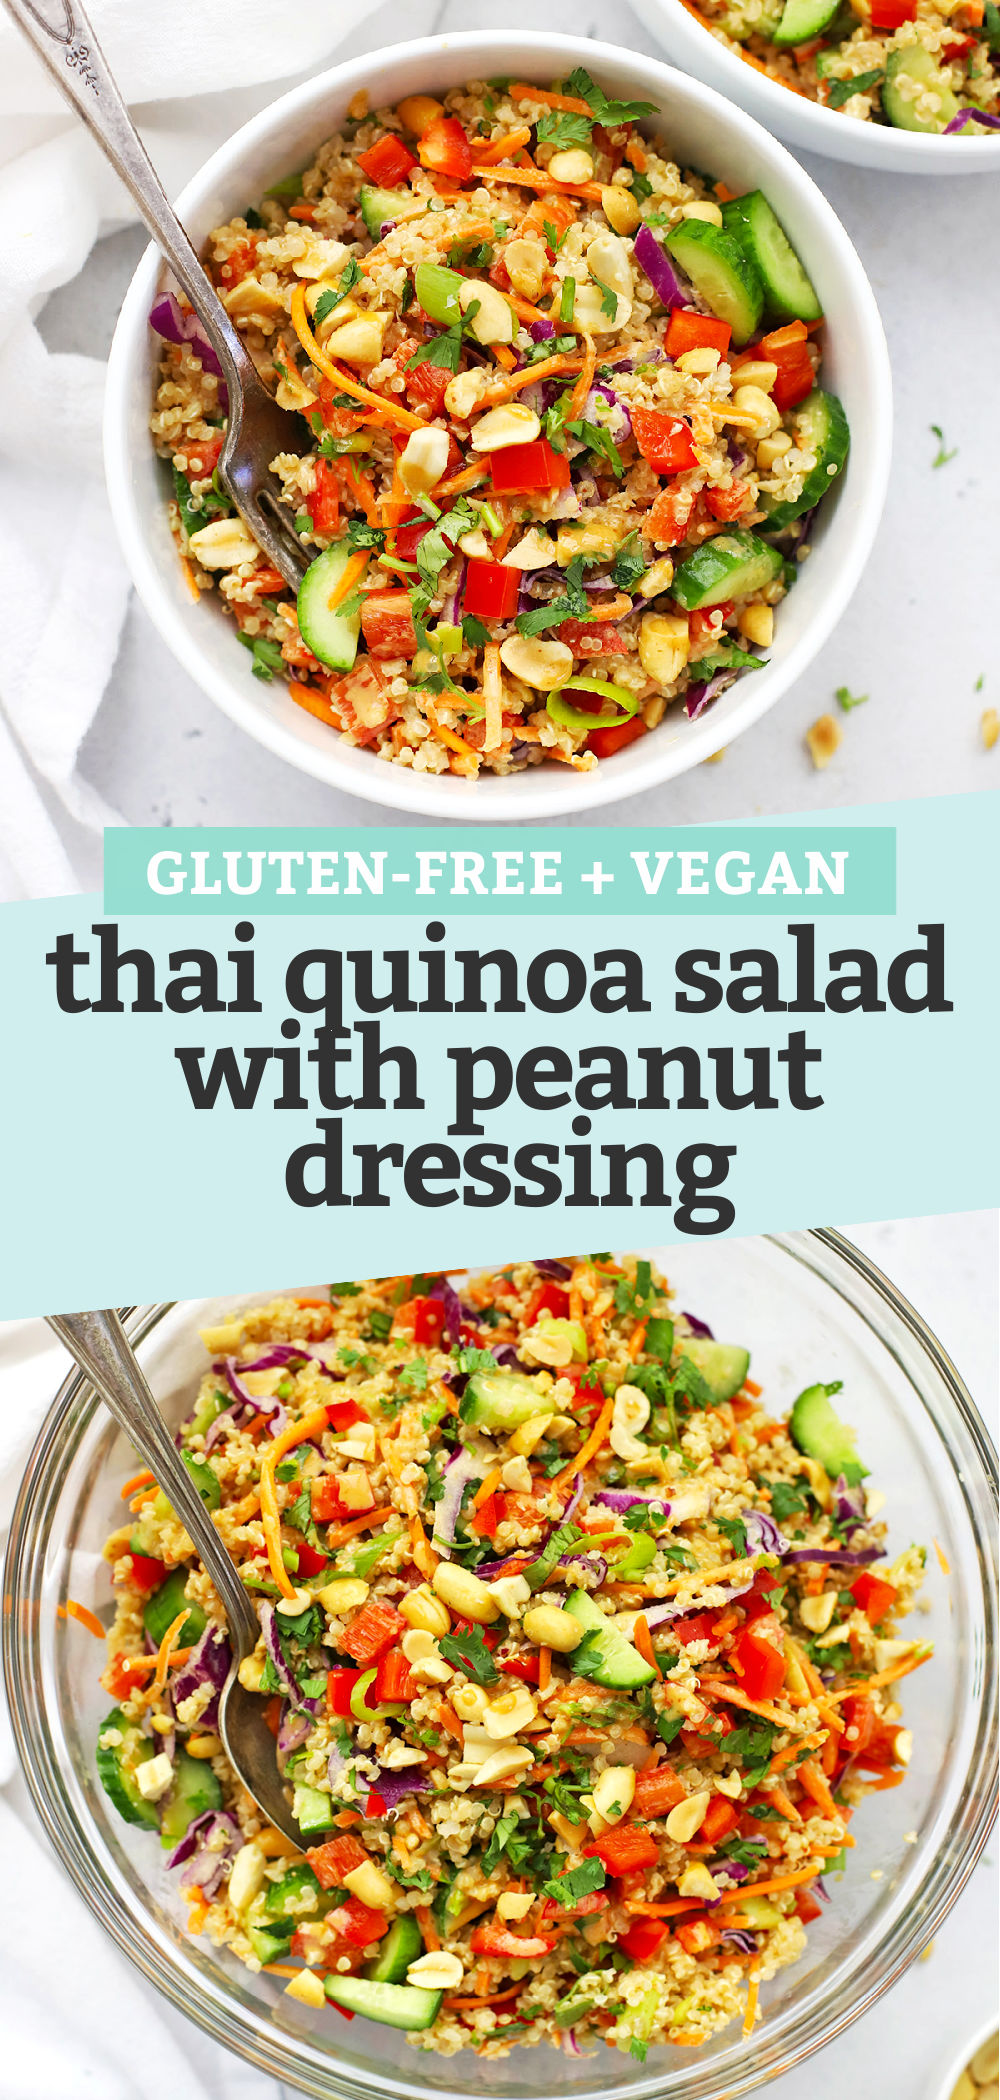 Collage of Images of Thai Quinoa Salad with Peanut Dressing Pouring Peanut Dressing on Thai Quinoa Salad in a glass bowl